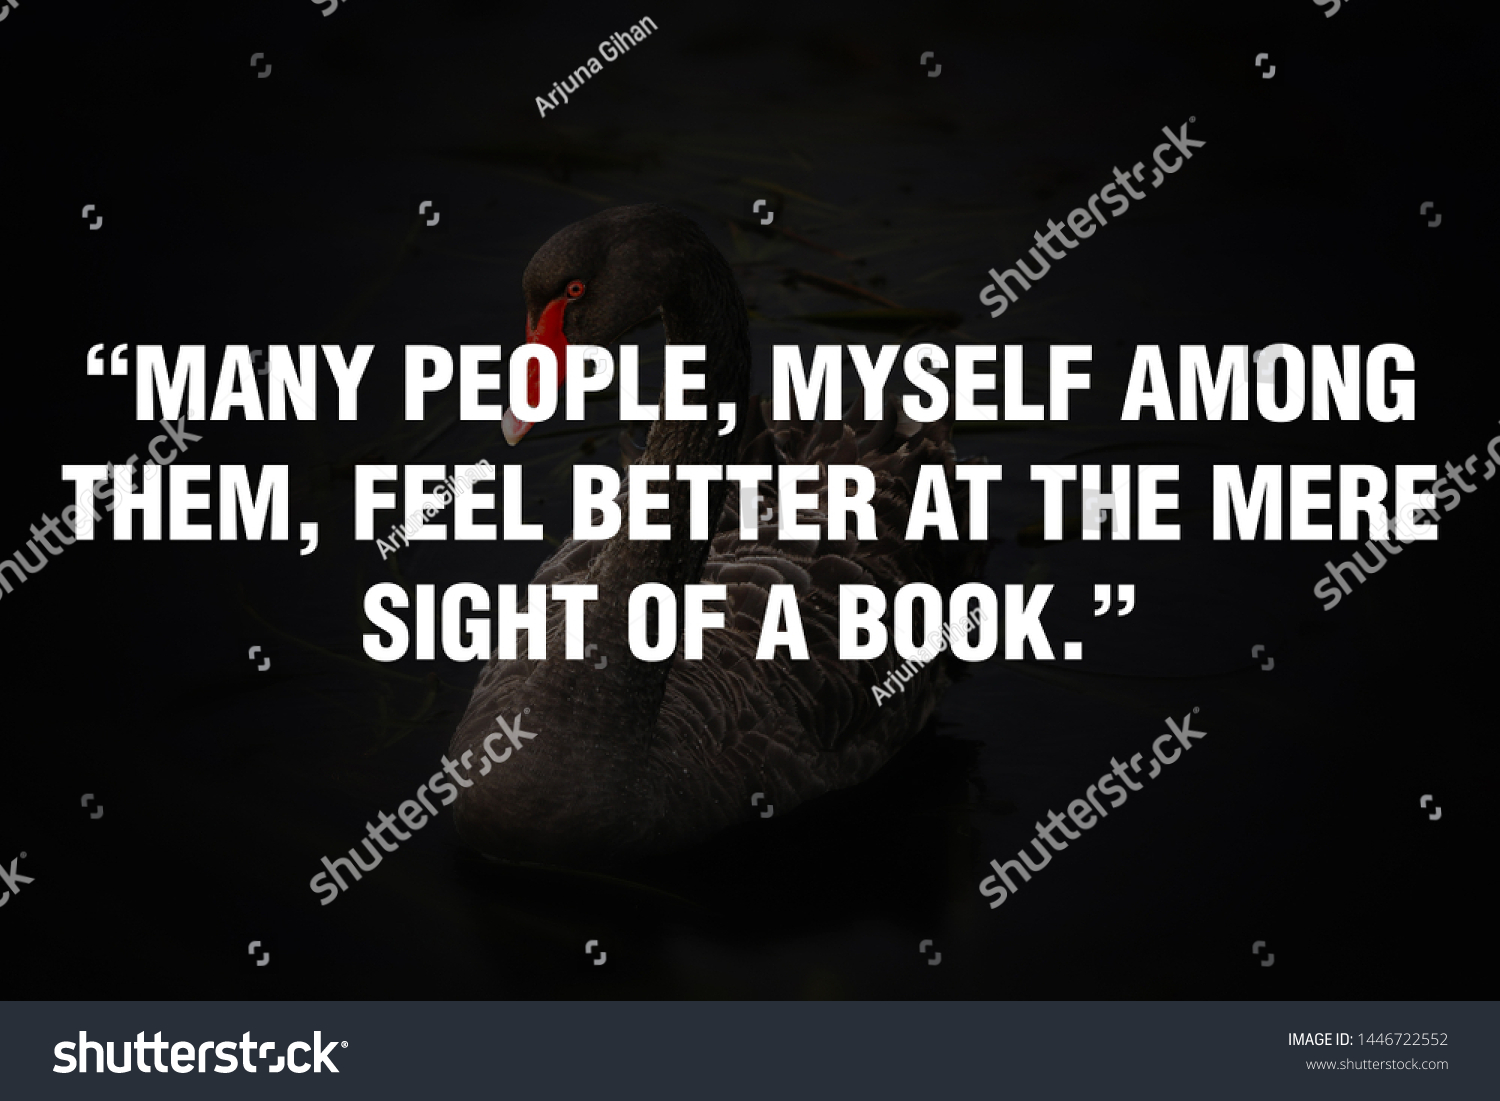 Motivational Quotes Design People Myself Among Stock Photo ...